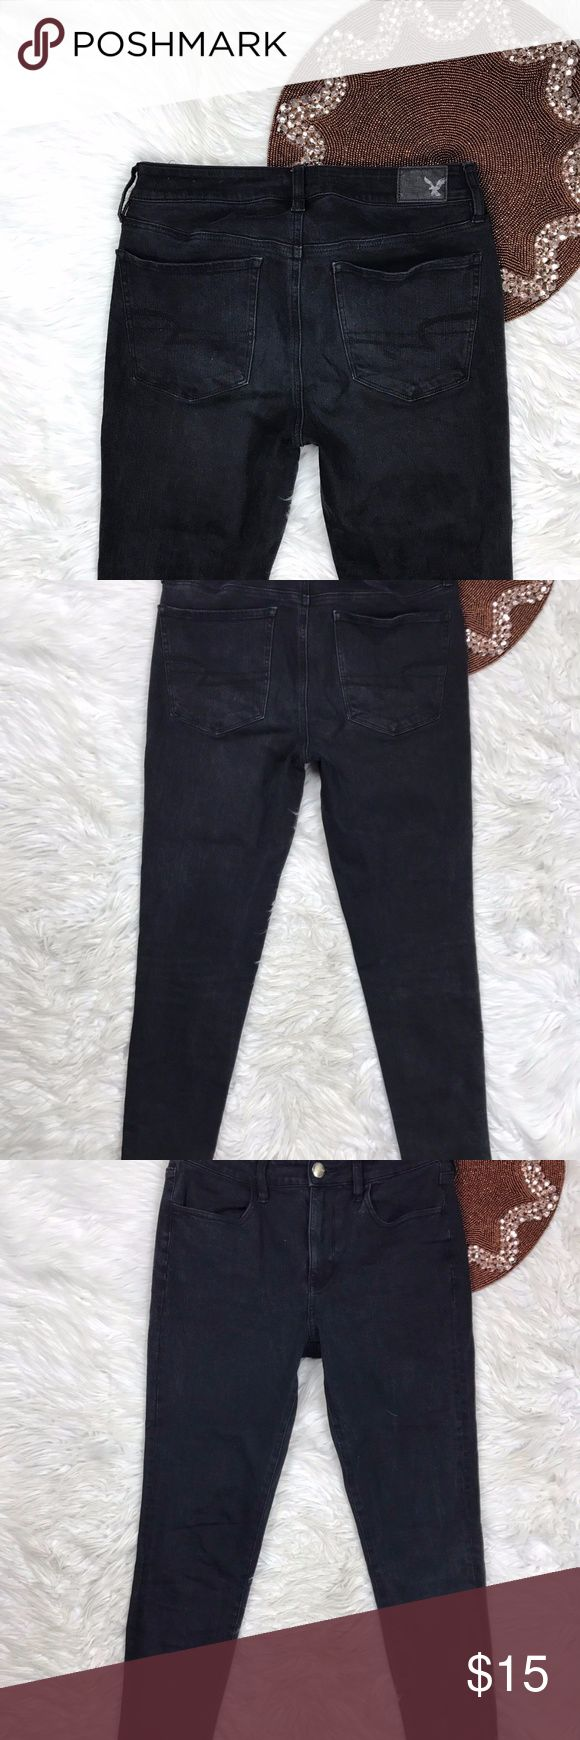 AEO Size 8 360 Super Stretch High Rise Jegging 111 Pre Owned  * Color(s) may vary slightly from photos  * Refer to photos for detail, photos are considered part of the description American Eagle Outfitters Jeans Skinny